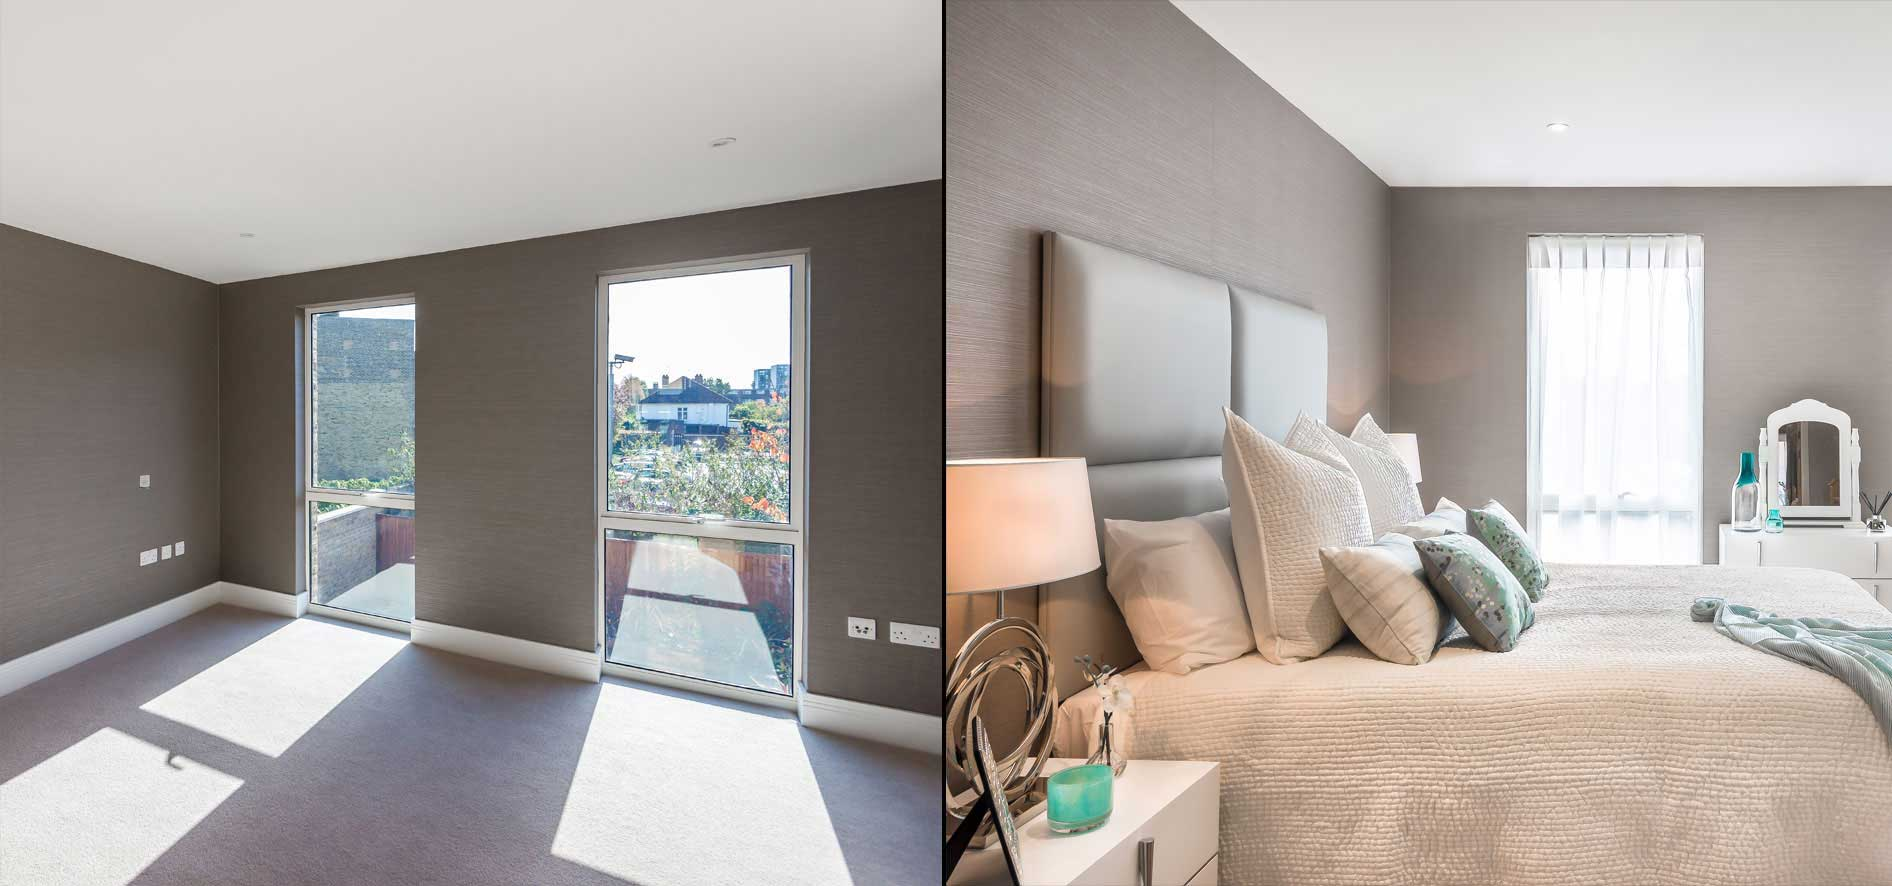 14-Napier-Square-Bromyard-Avenue-Acton-before-after